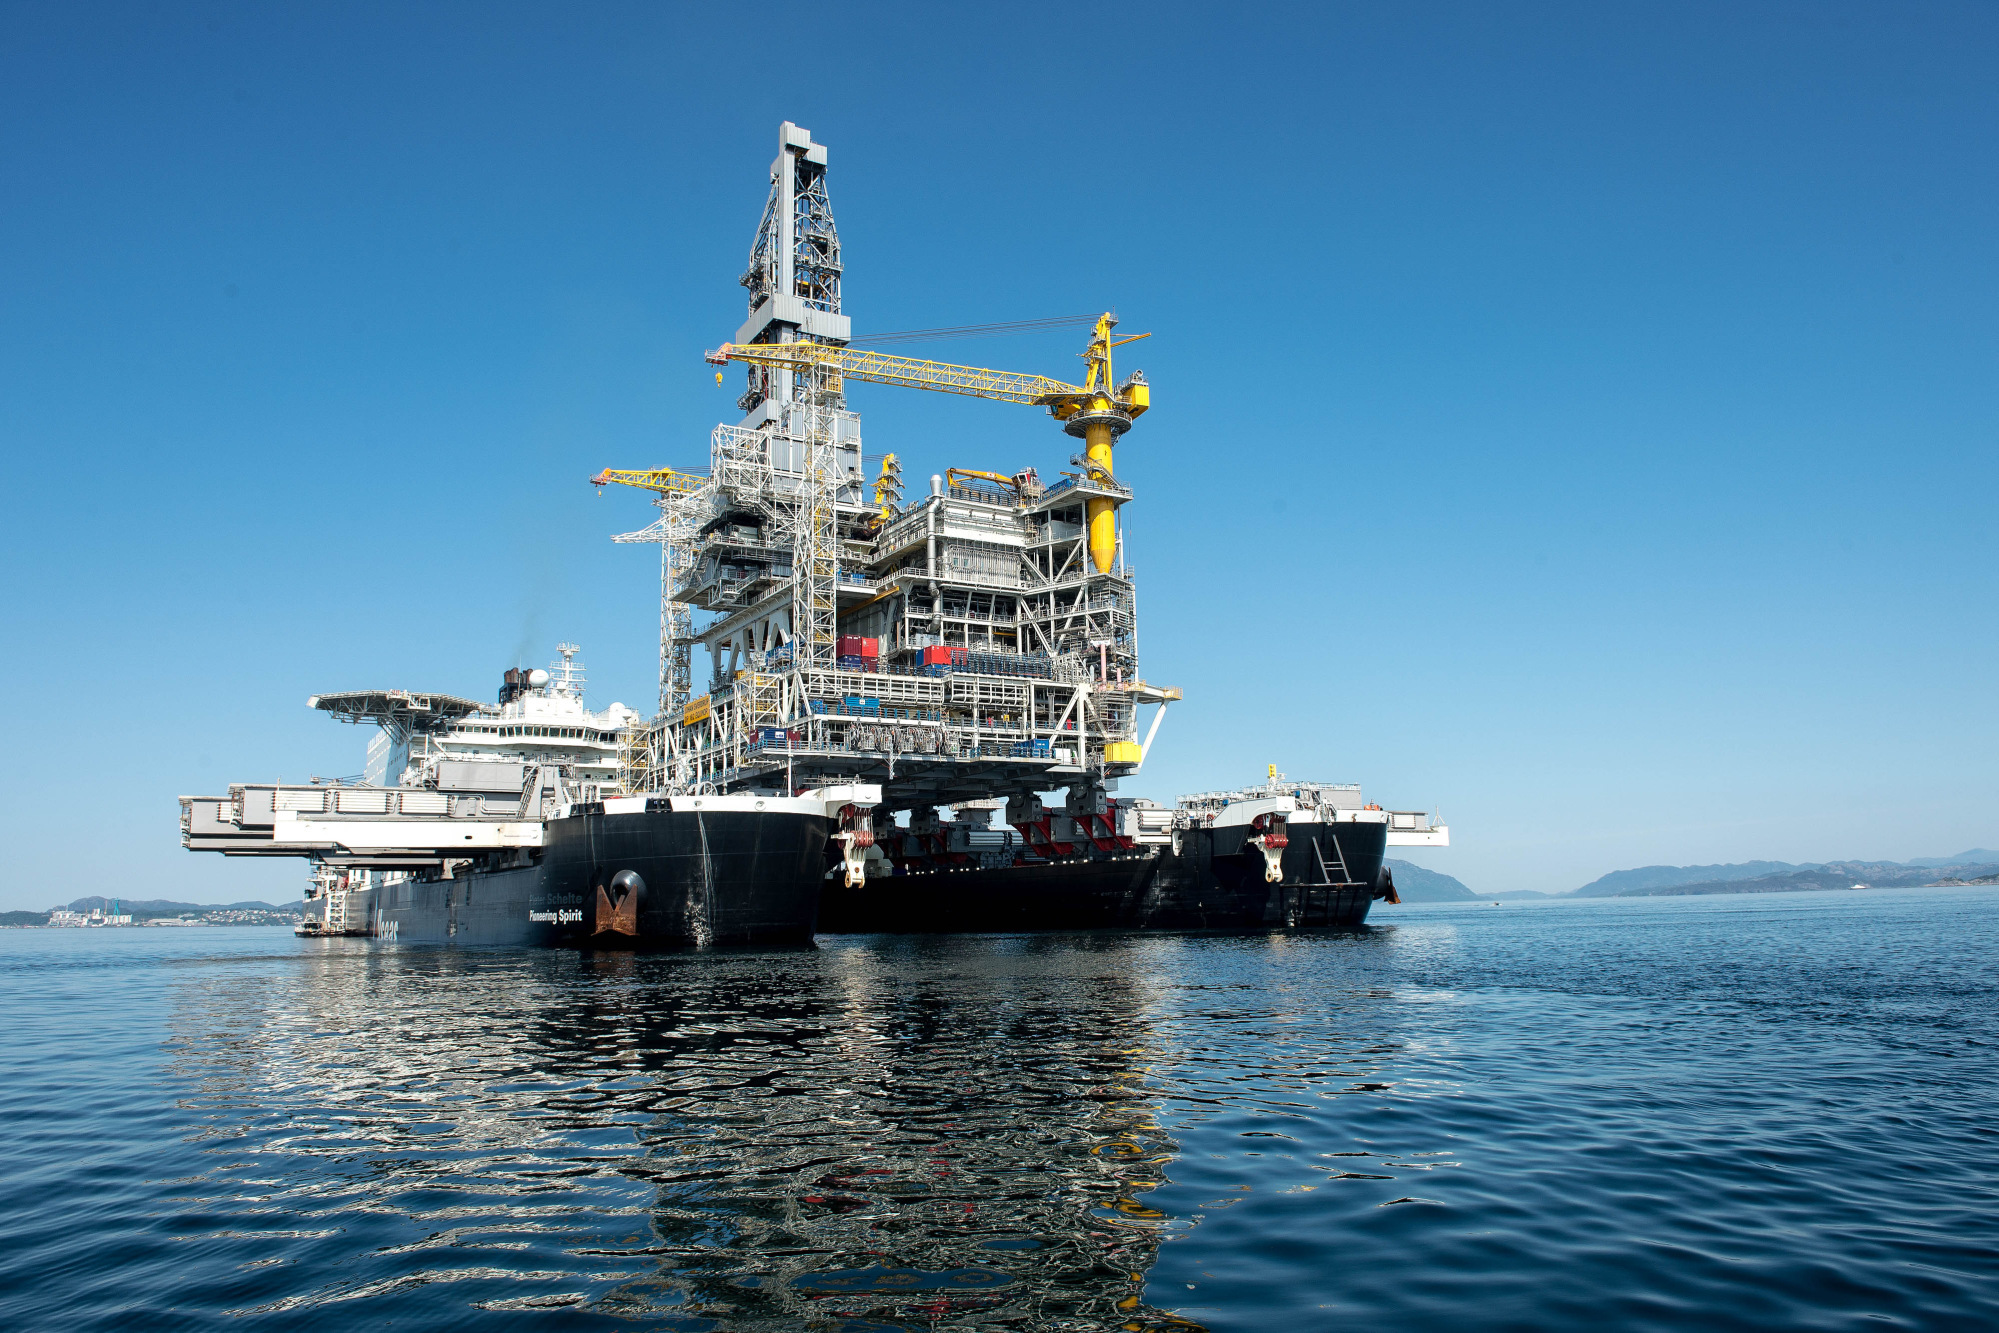 An oil drilling platform sits on board the world's largest construction vessel, the Pioneering Spirit, in the Bomla fjord near Leirvik, ahead of its transportation to the Johan Sverdrup oil field, Norway, on Friday, June 1, 2018. Equinor ASA has reduced the break-even price to below $20 a barrel in its flagship Johan Sverdrup oil project in the North Sea. Photographer: Carina Johansen/Bloomberg